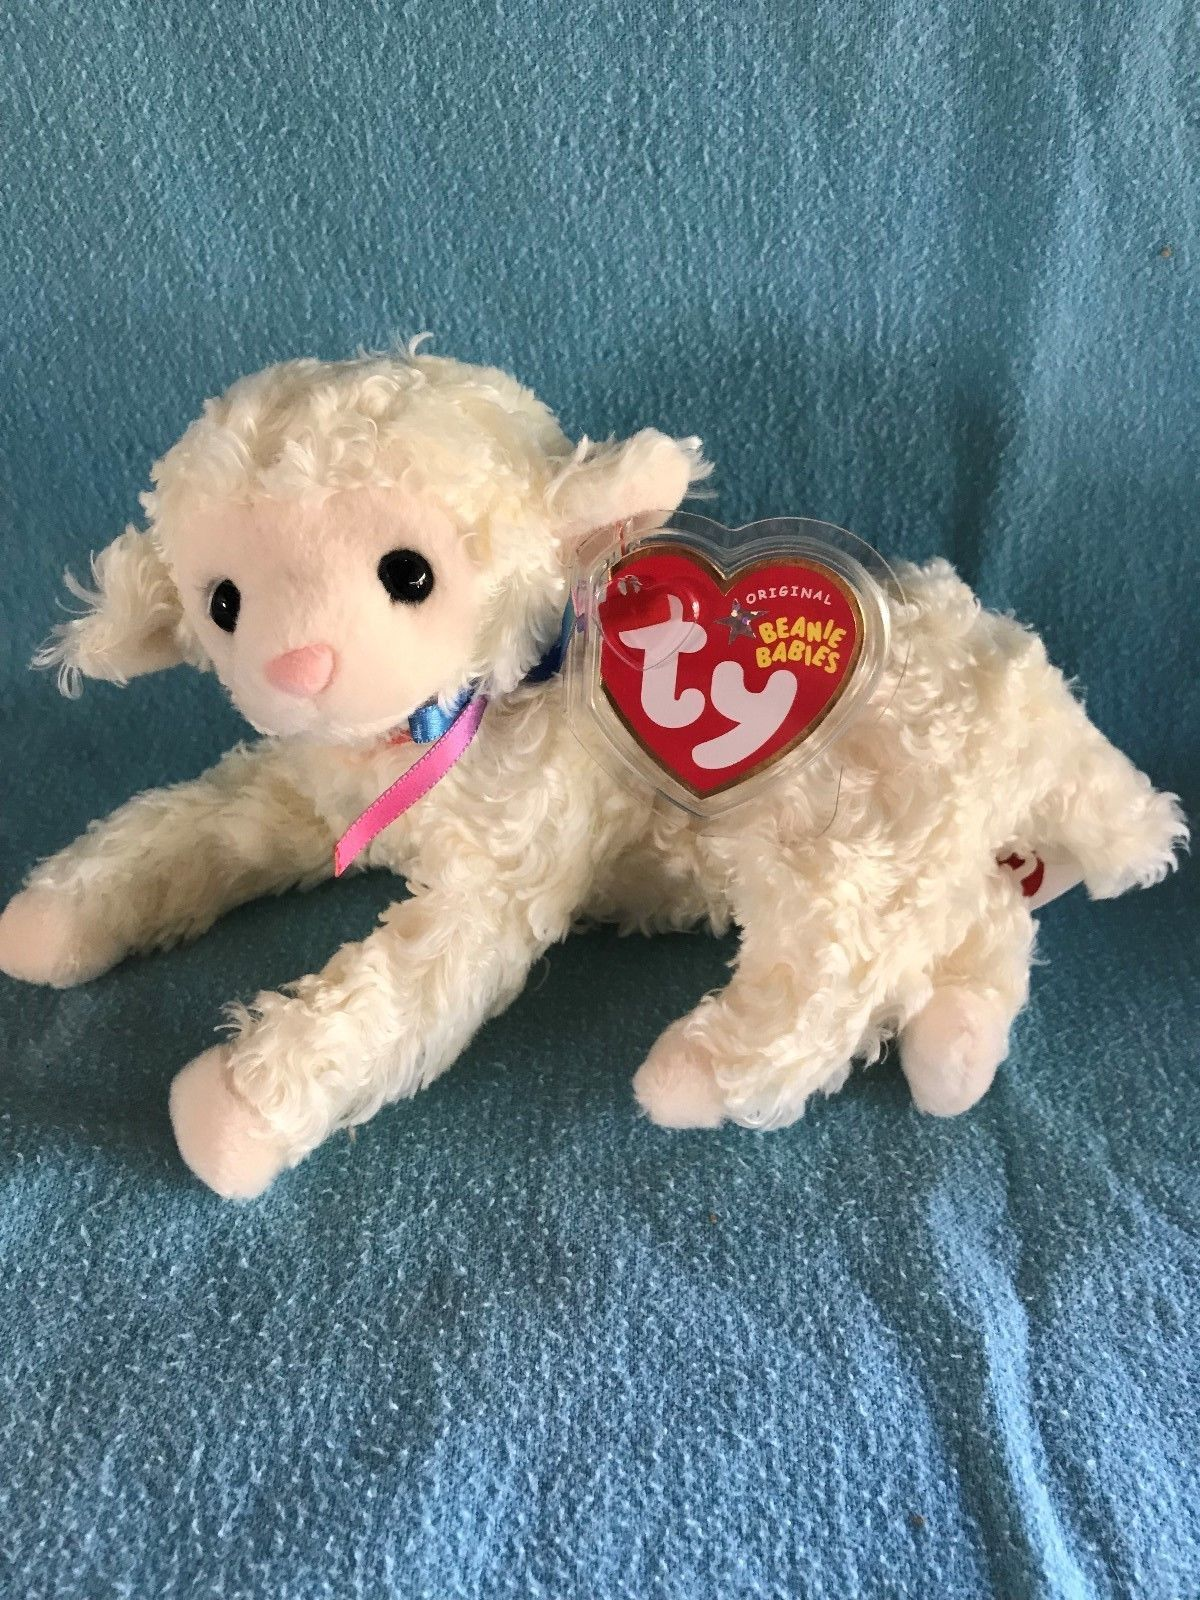 157e3ee4160 TY Beanie Baby - TENDER the Lamb (7 inch) - MWMTs Stuffed Animal Toy 2004